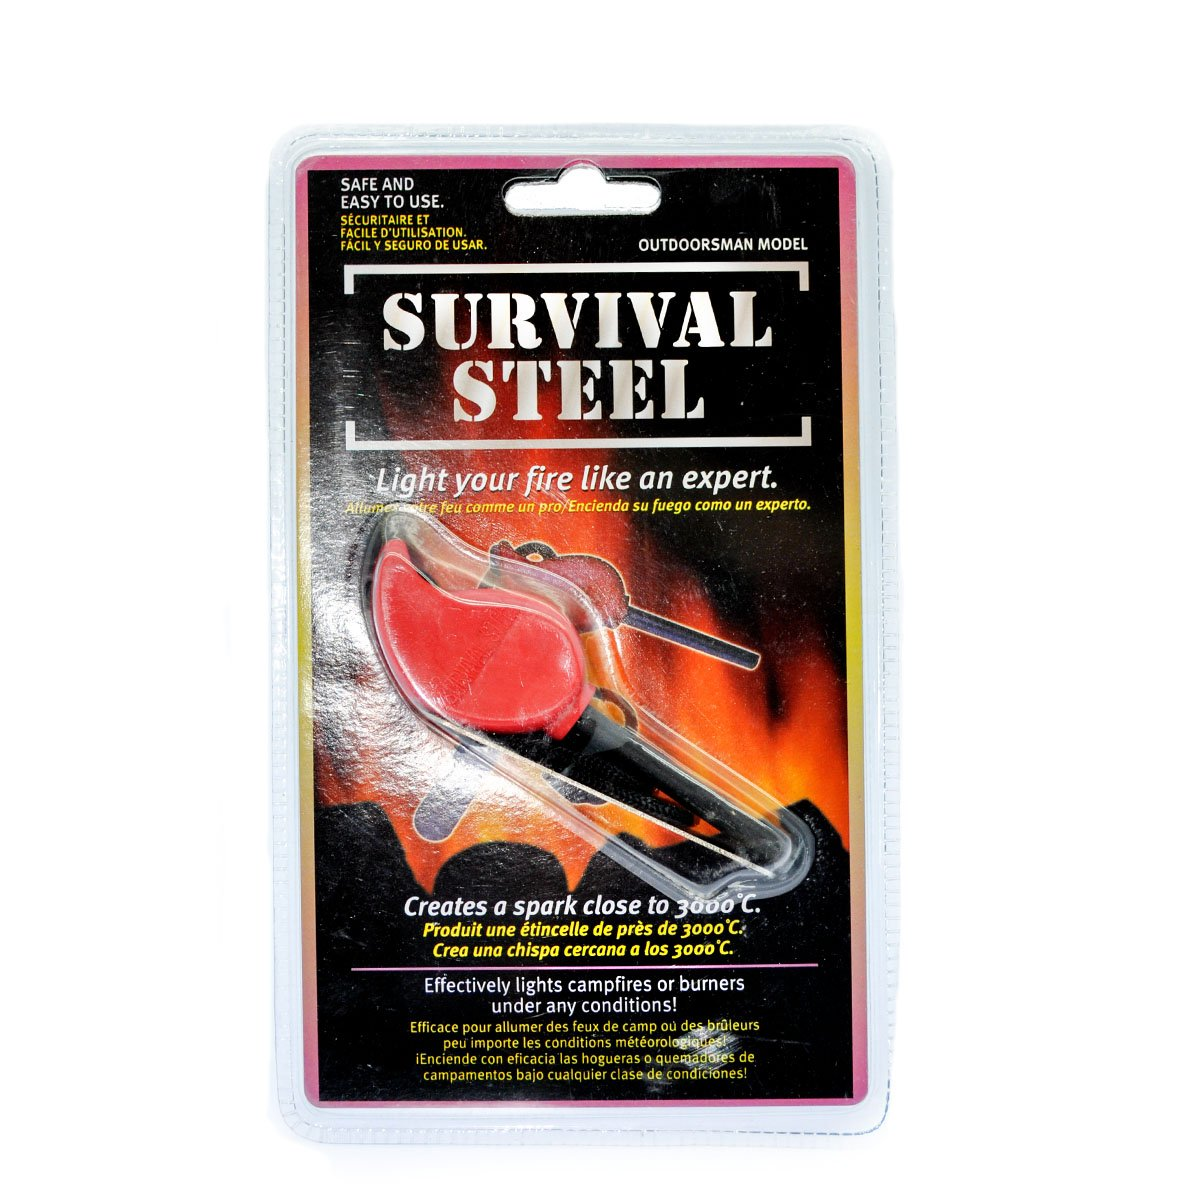 SurvivalSteel All Weather Fire Starter Inventions /& Gadgets 851380007109